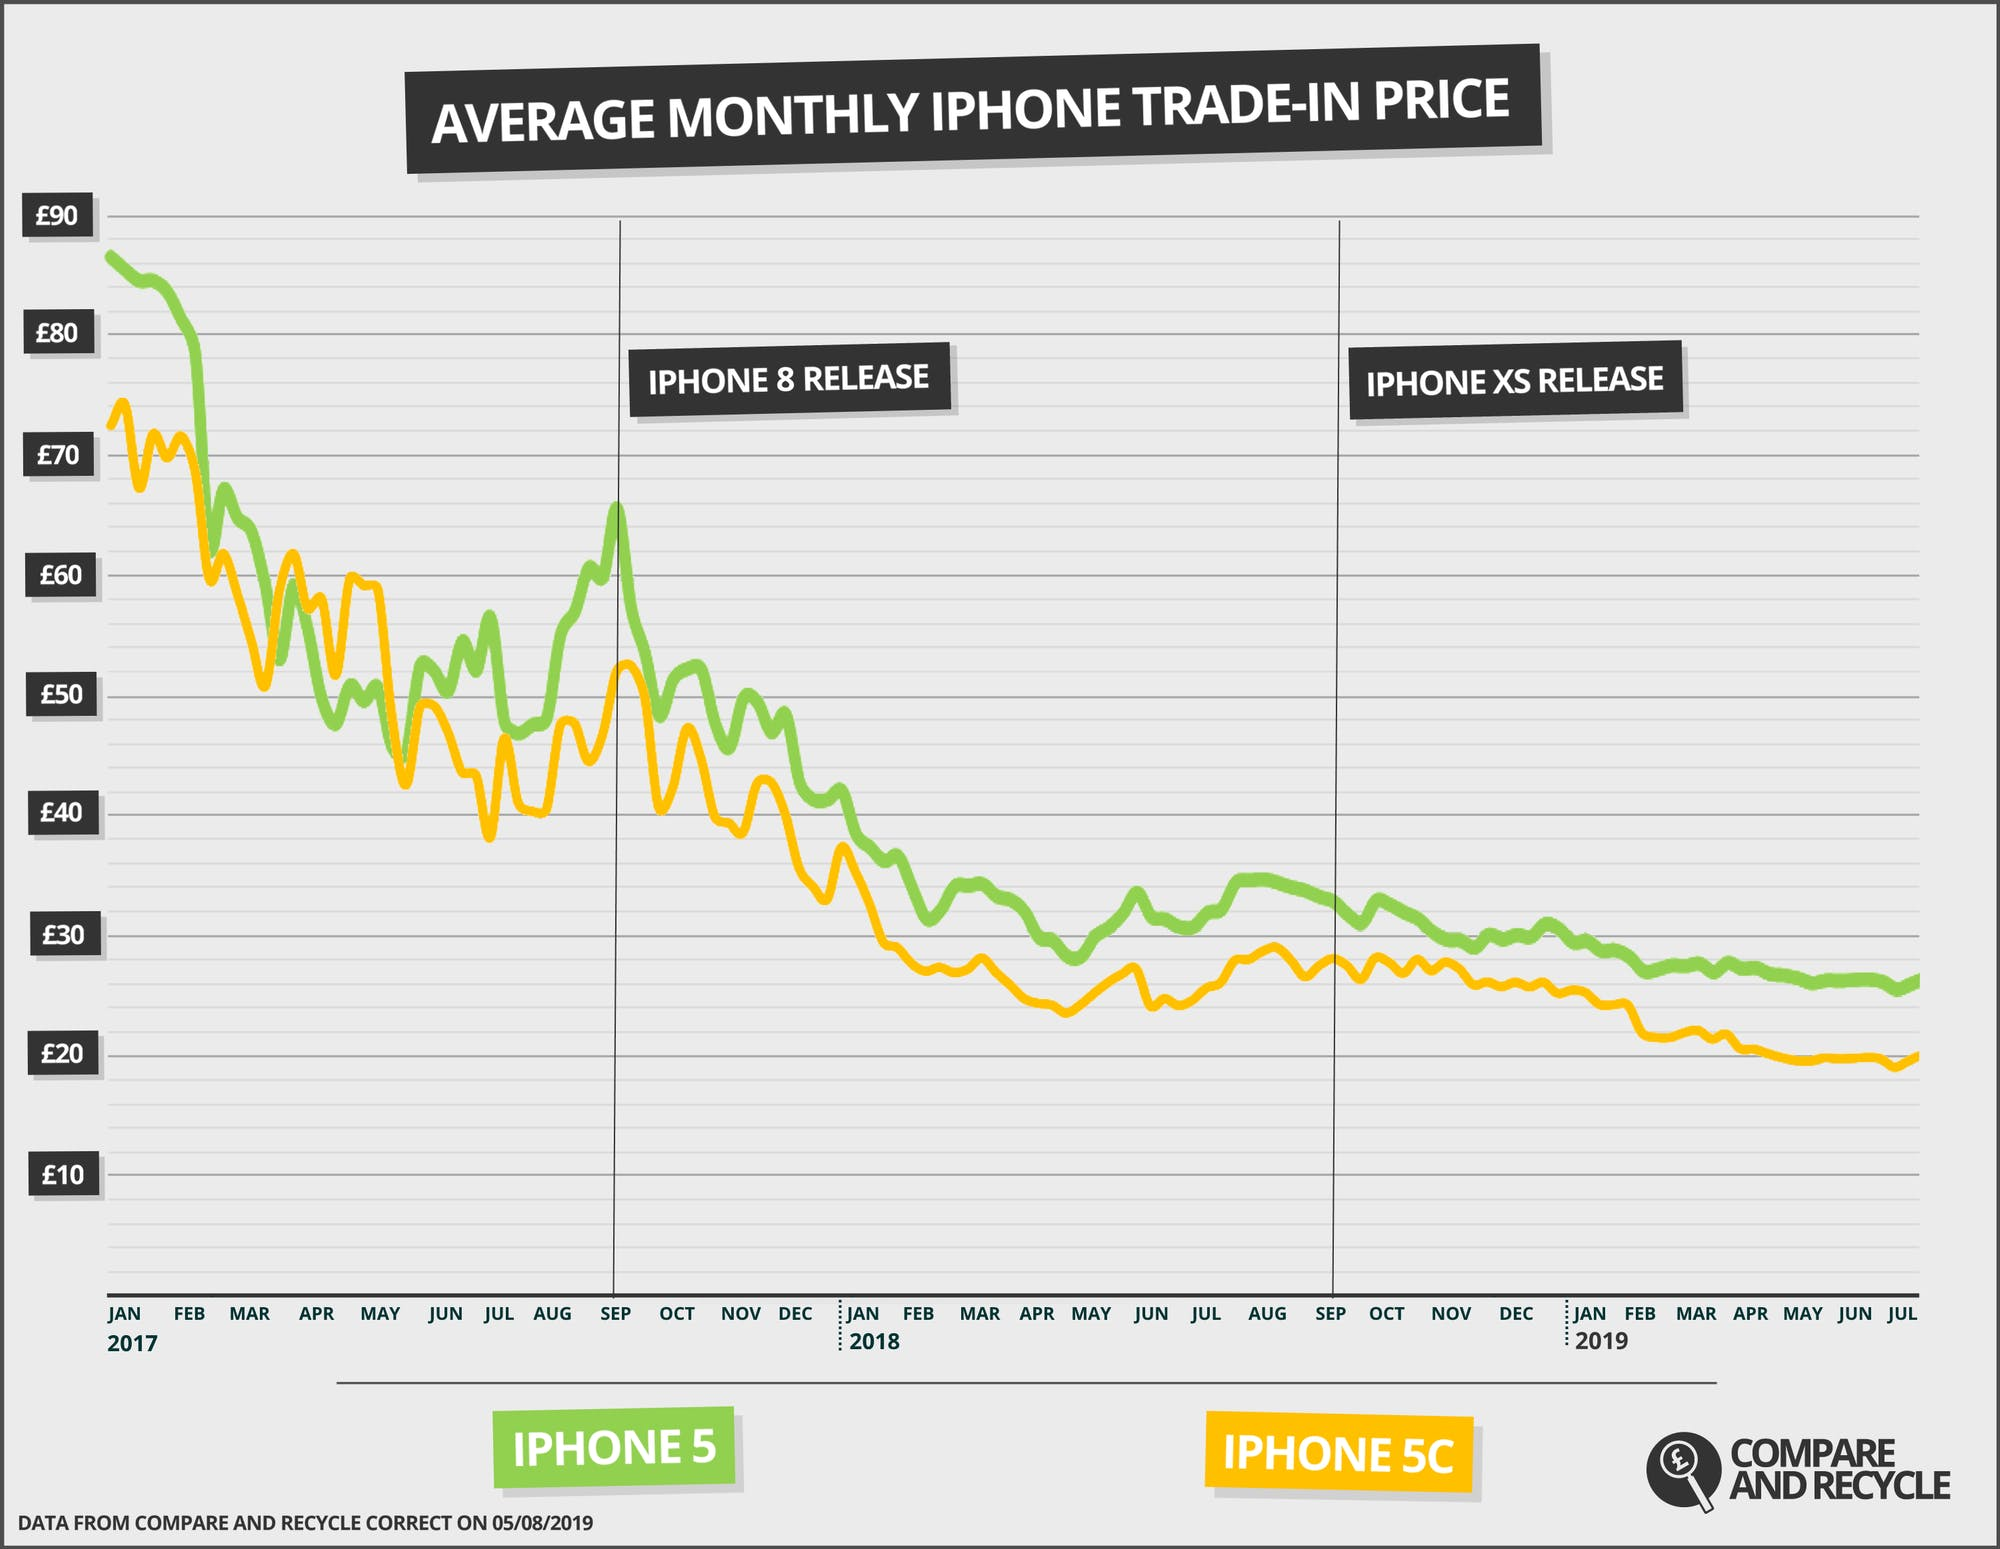 iPhone 5 and iPhone 5C recycling price dynamics over the last two years. Source: Compare and Recycle